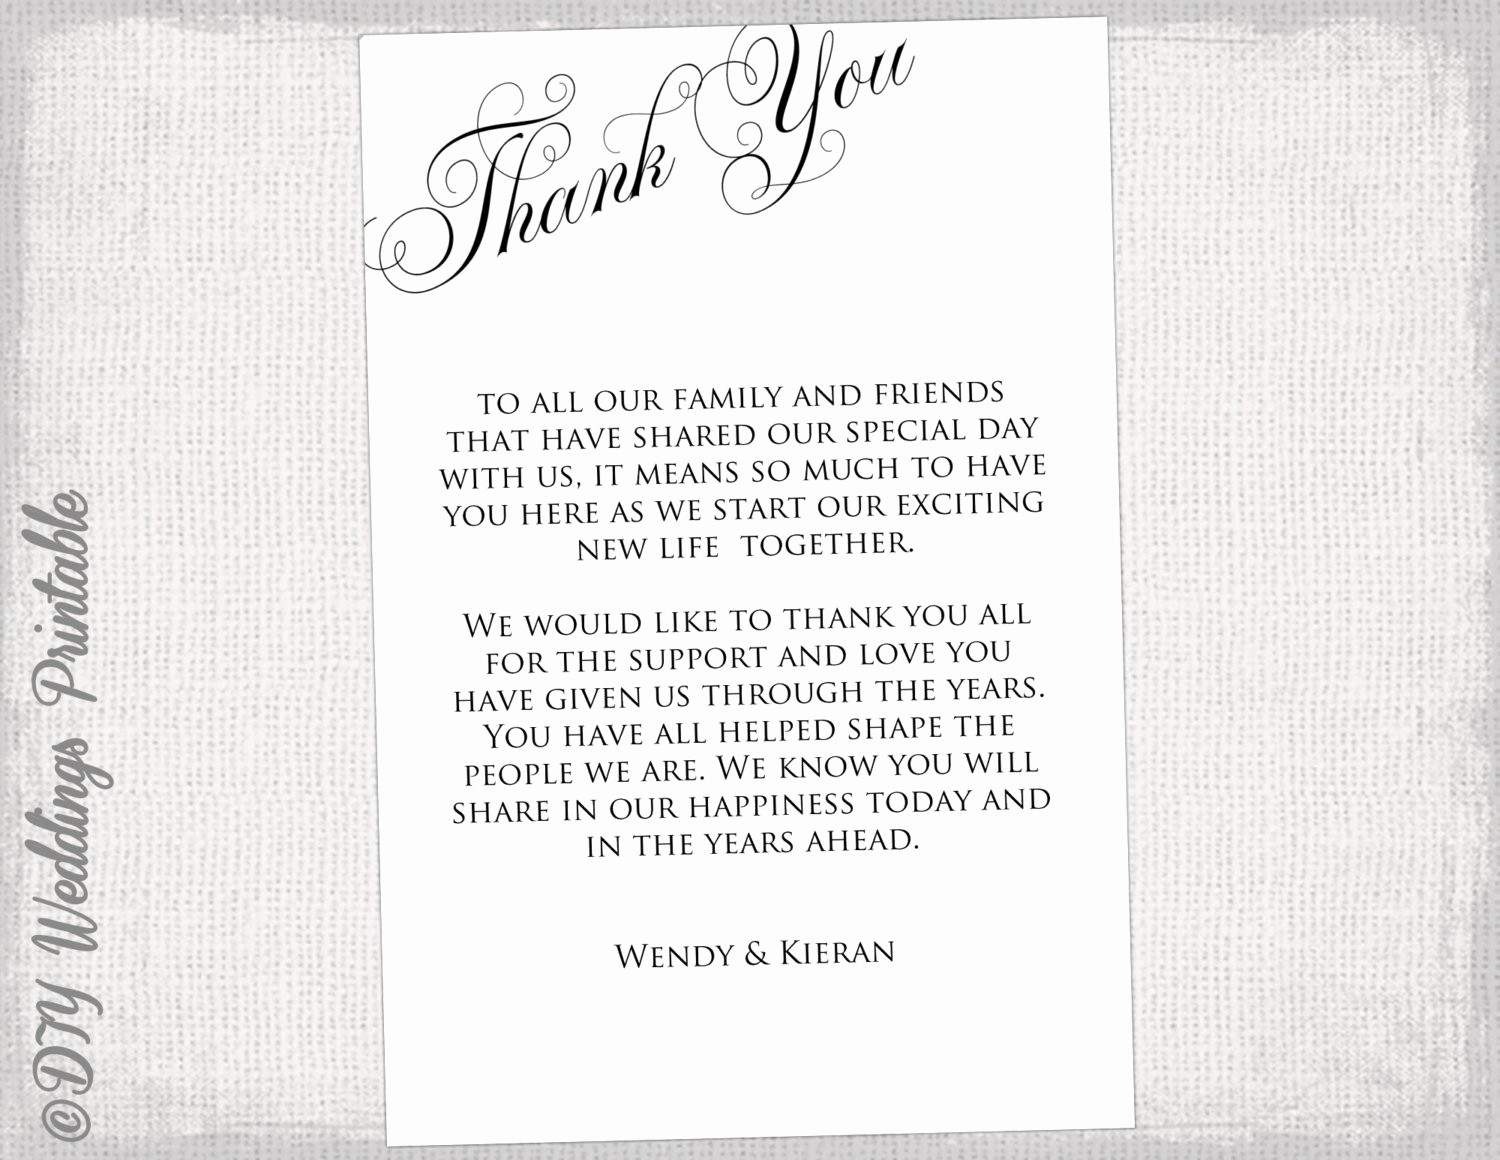 Thank You Note Cards Template Beautiful Printable Thank You Card Template Black & White Wedding Thank